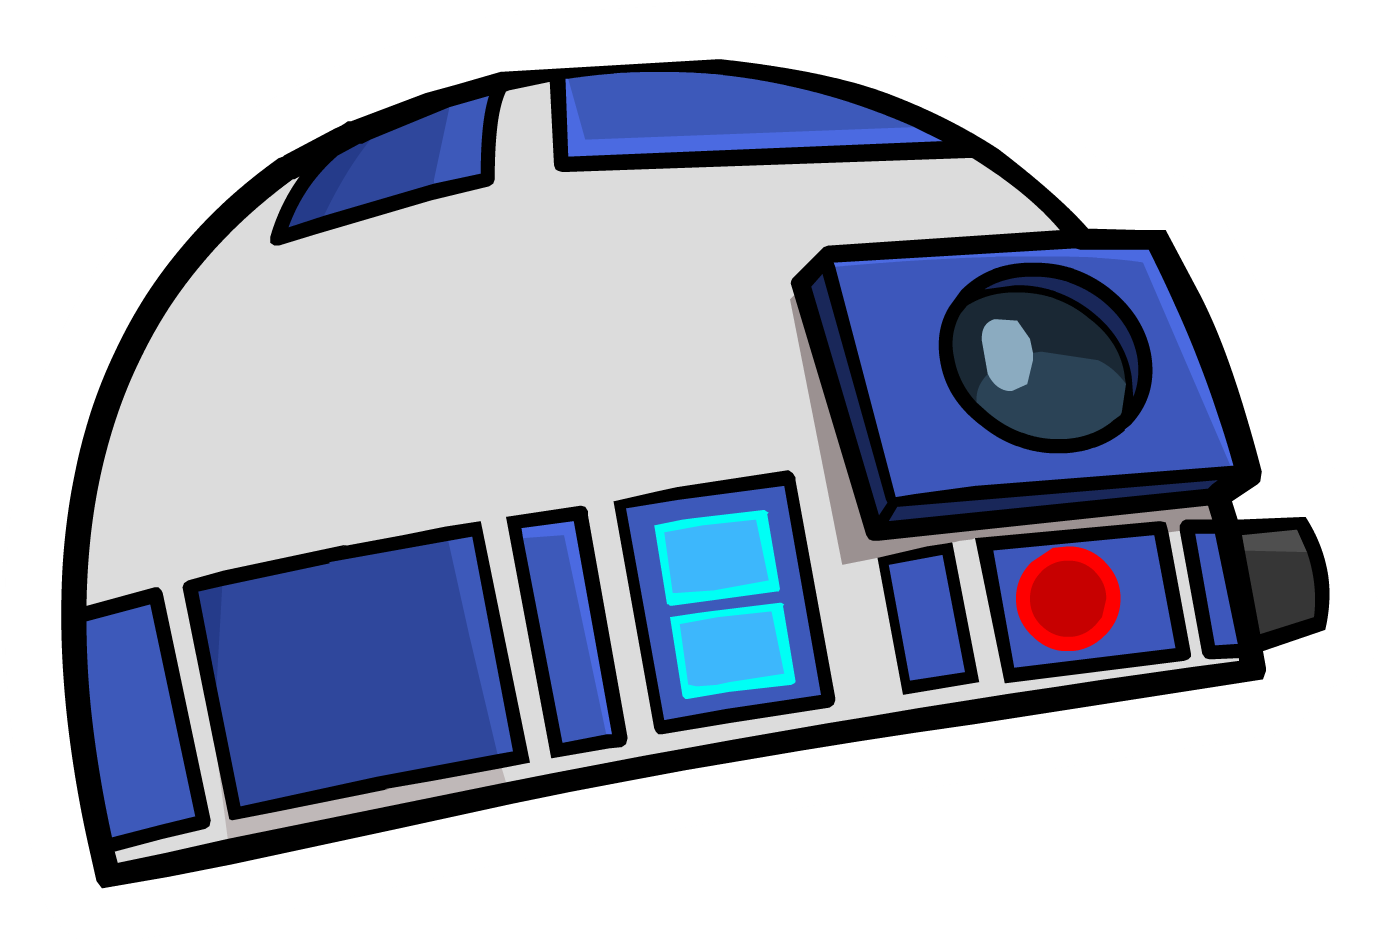 R2 d2 pin club penguin wiki fandom powered by wikia